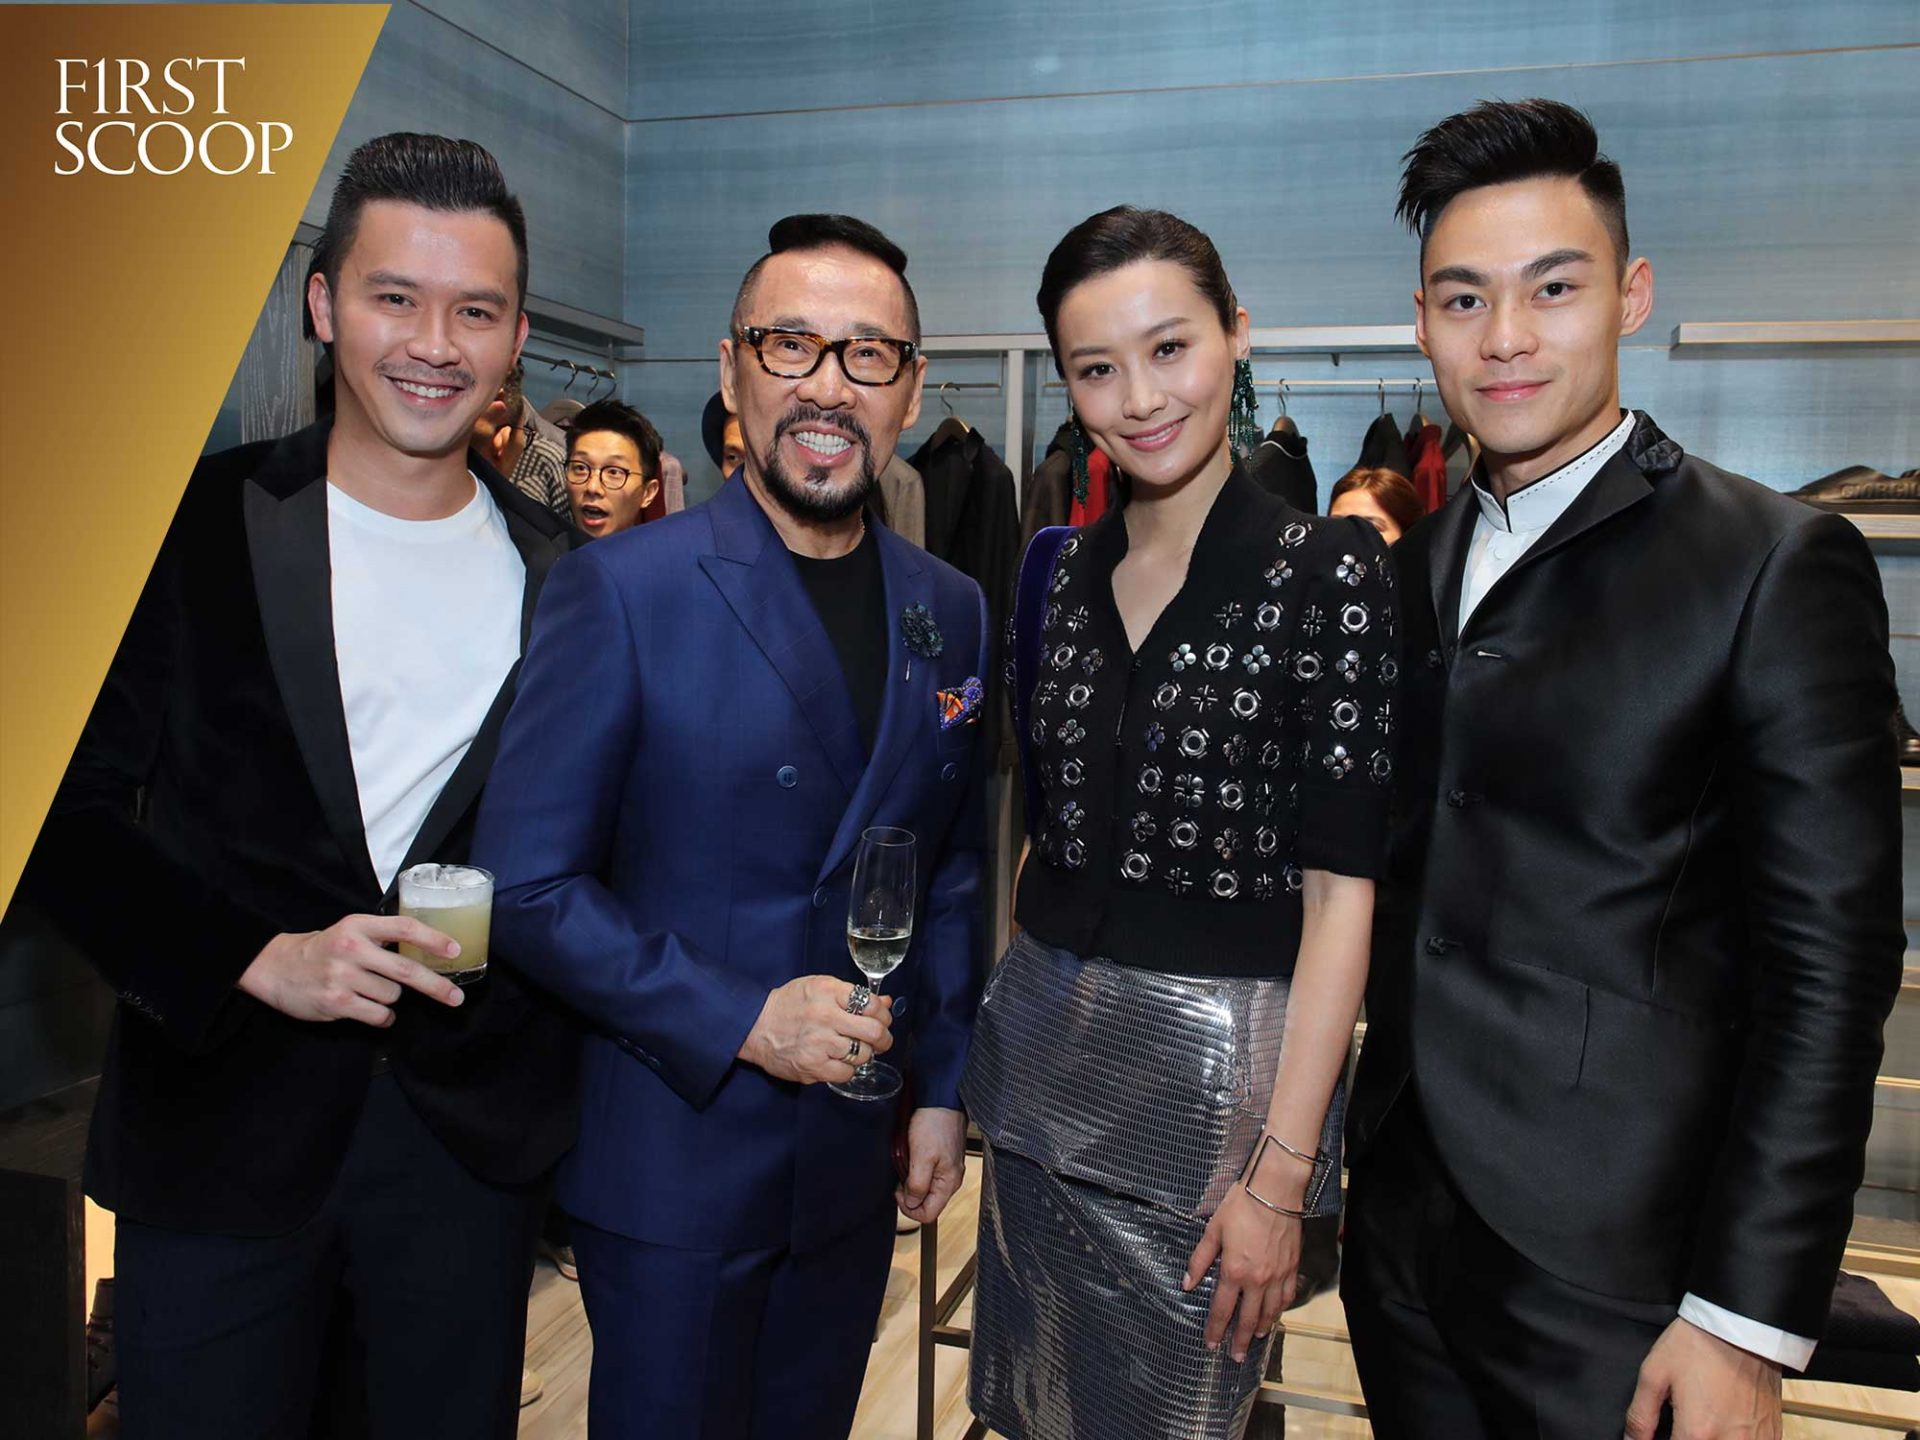 first scoop armani kl store opening